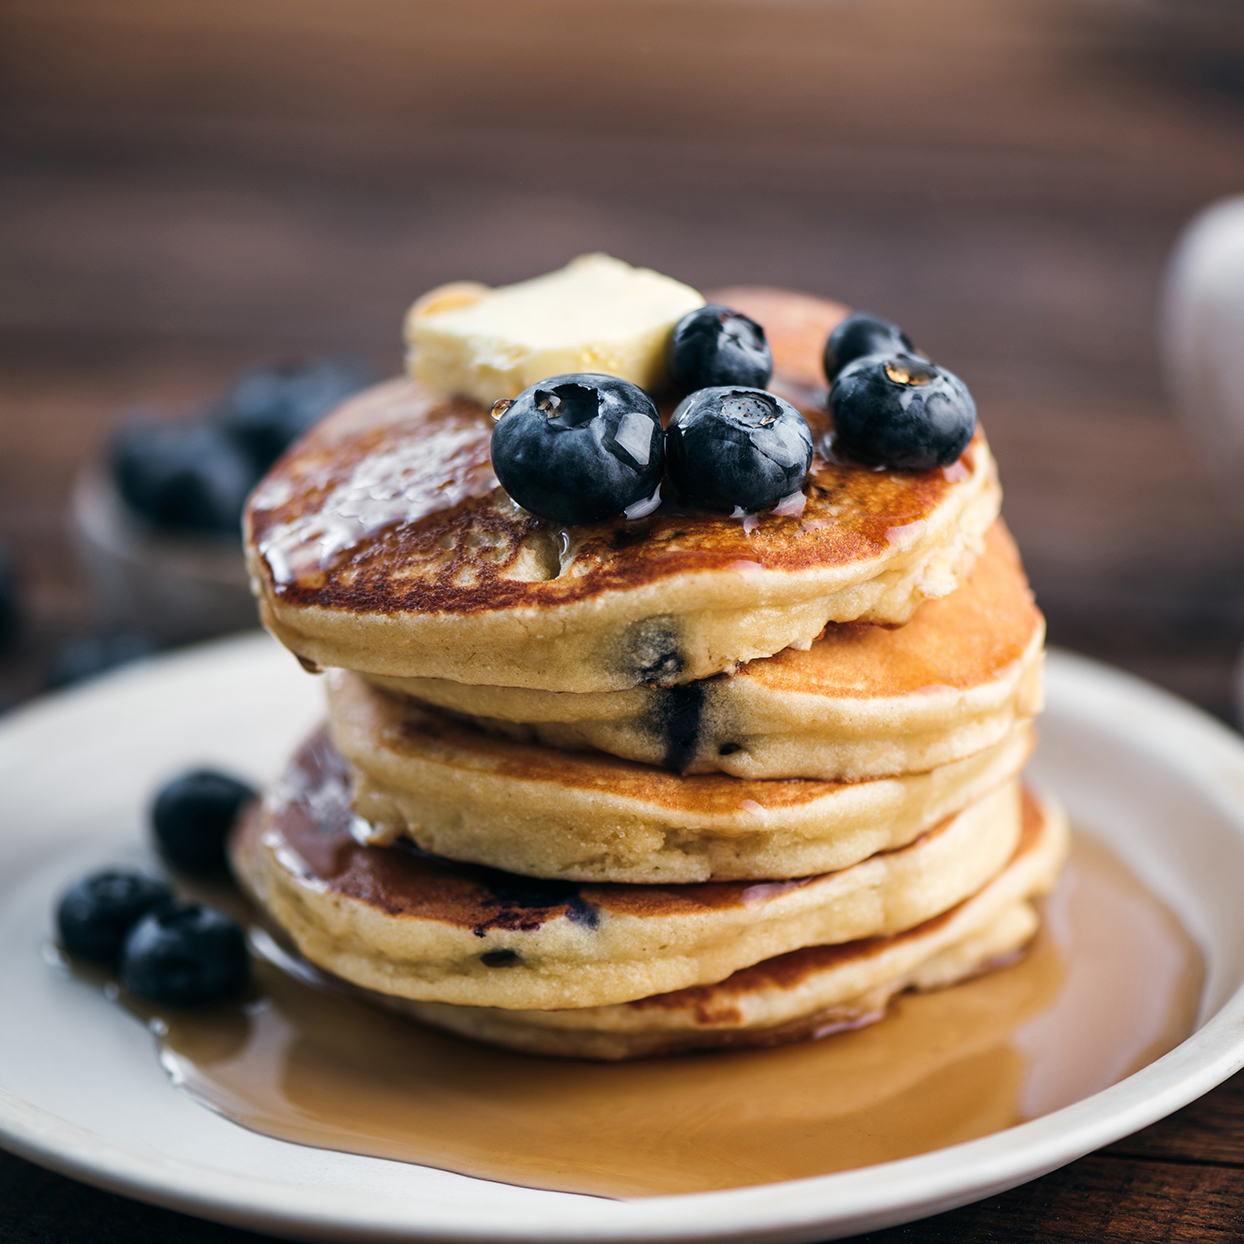 Tasty Blueberry Pancakes With Syrup